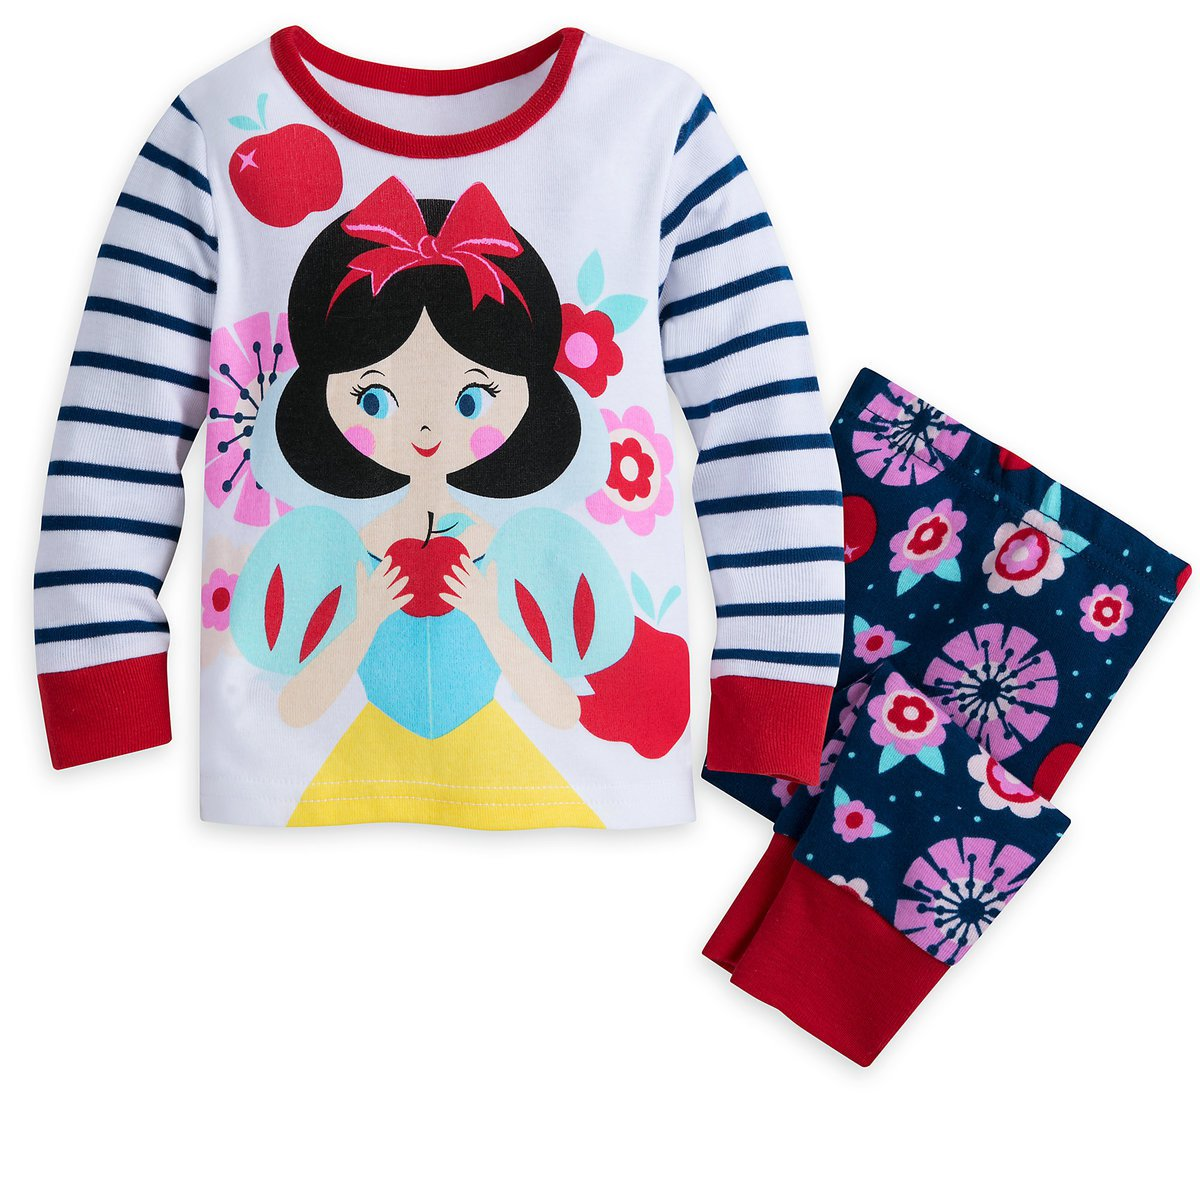 Disney Store Snow White PJ Pals for Baby Pajamas 18-24 Months